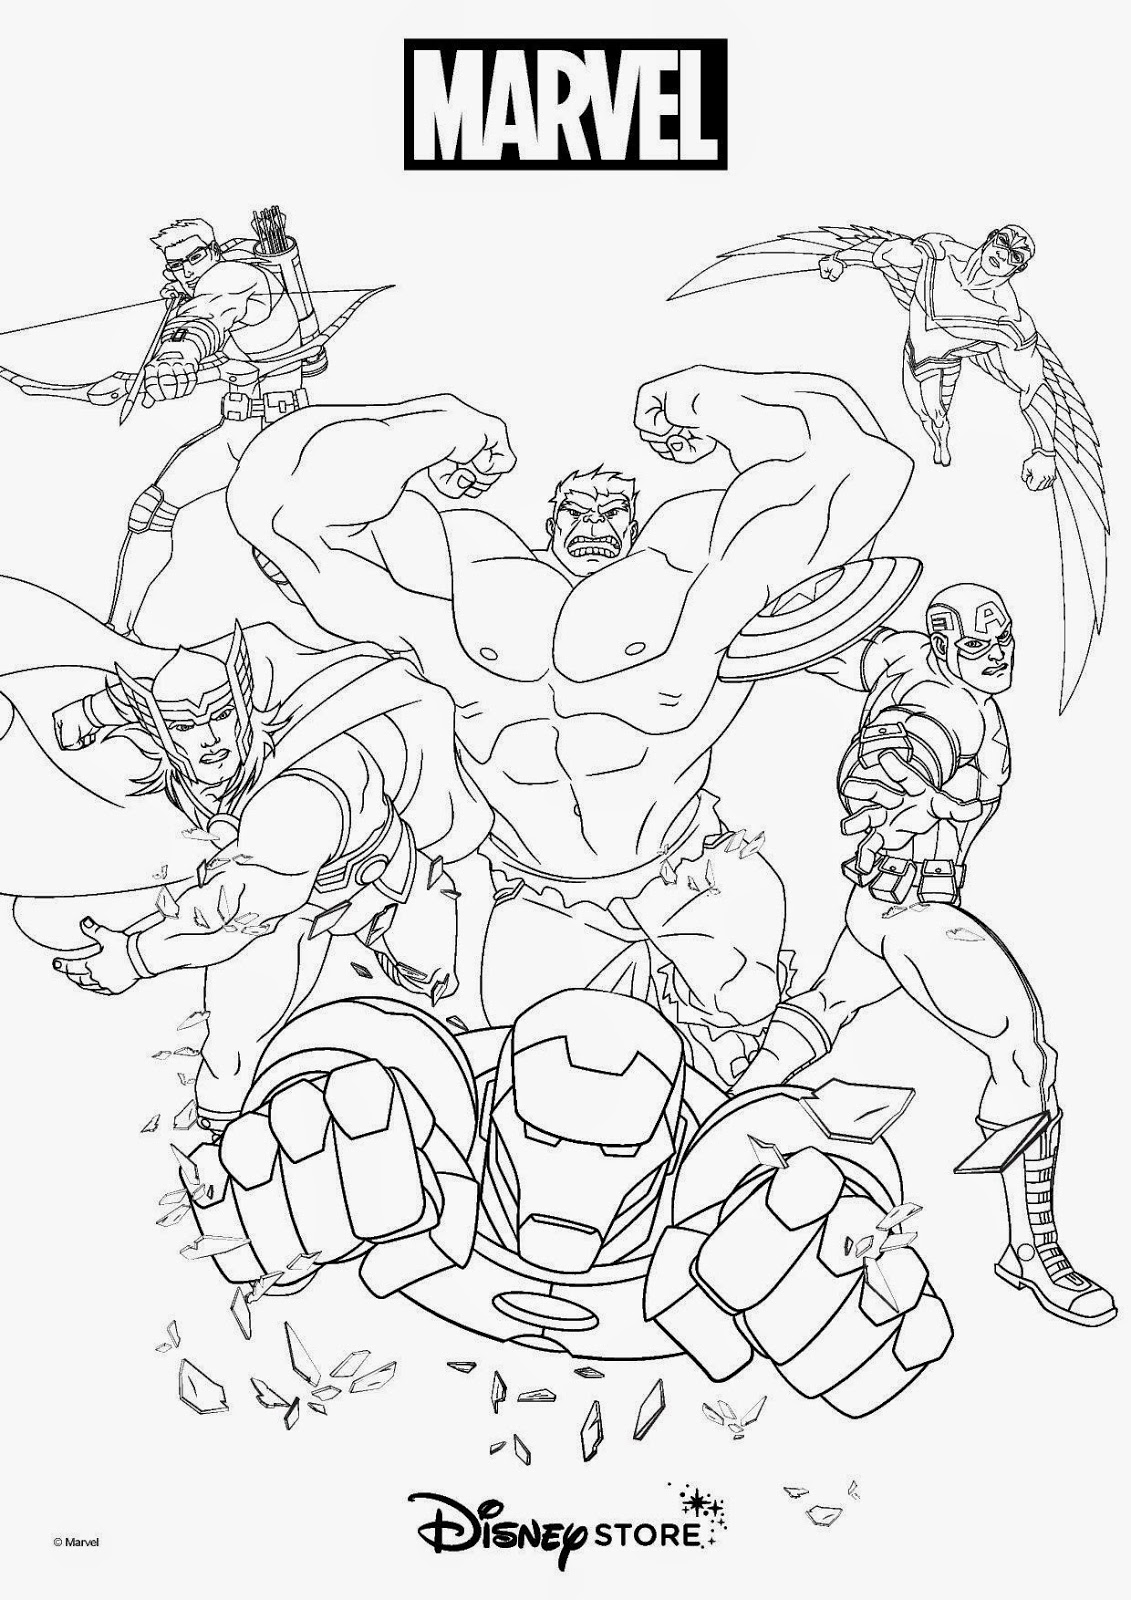 Ausmalbilder Marvel Superhelden: Super Heroes Coloring Pages